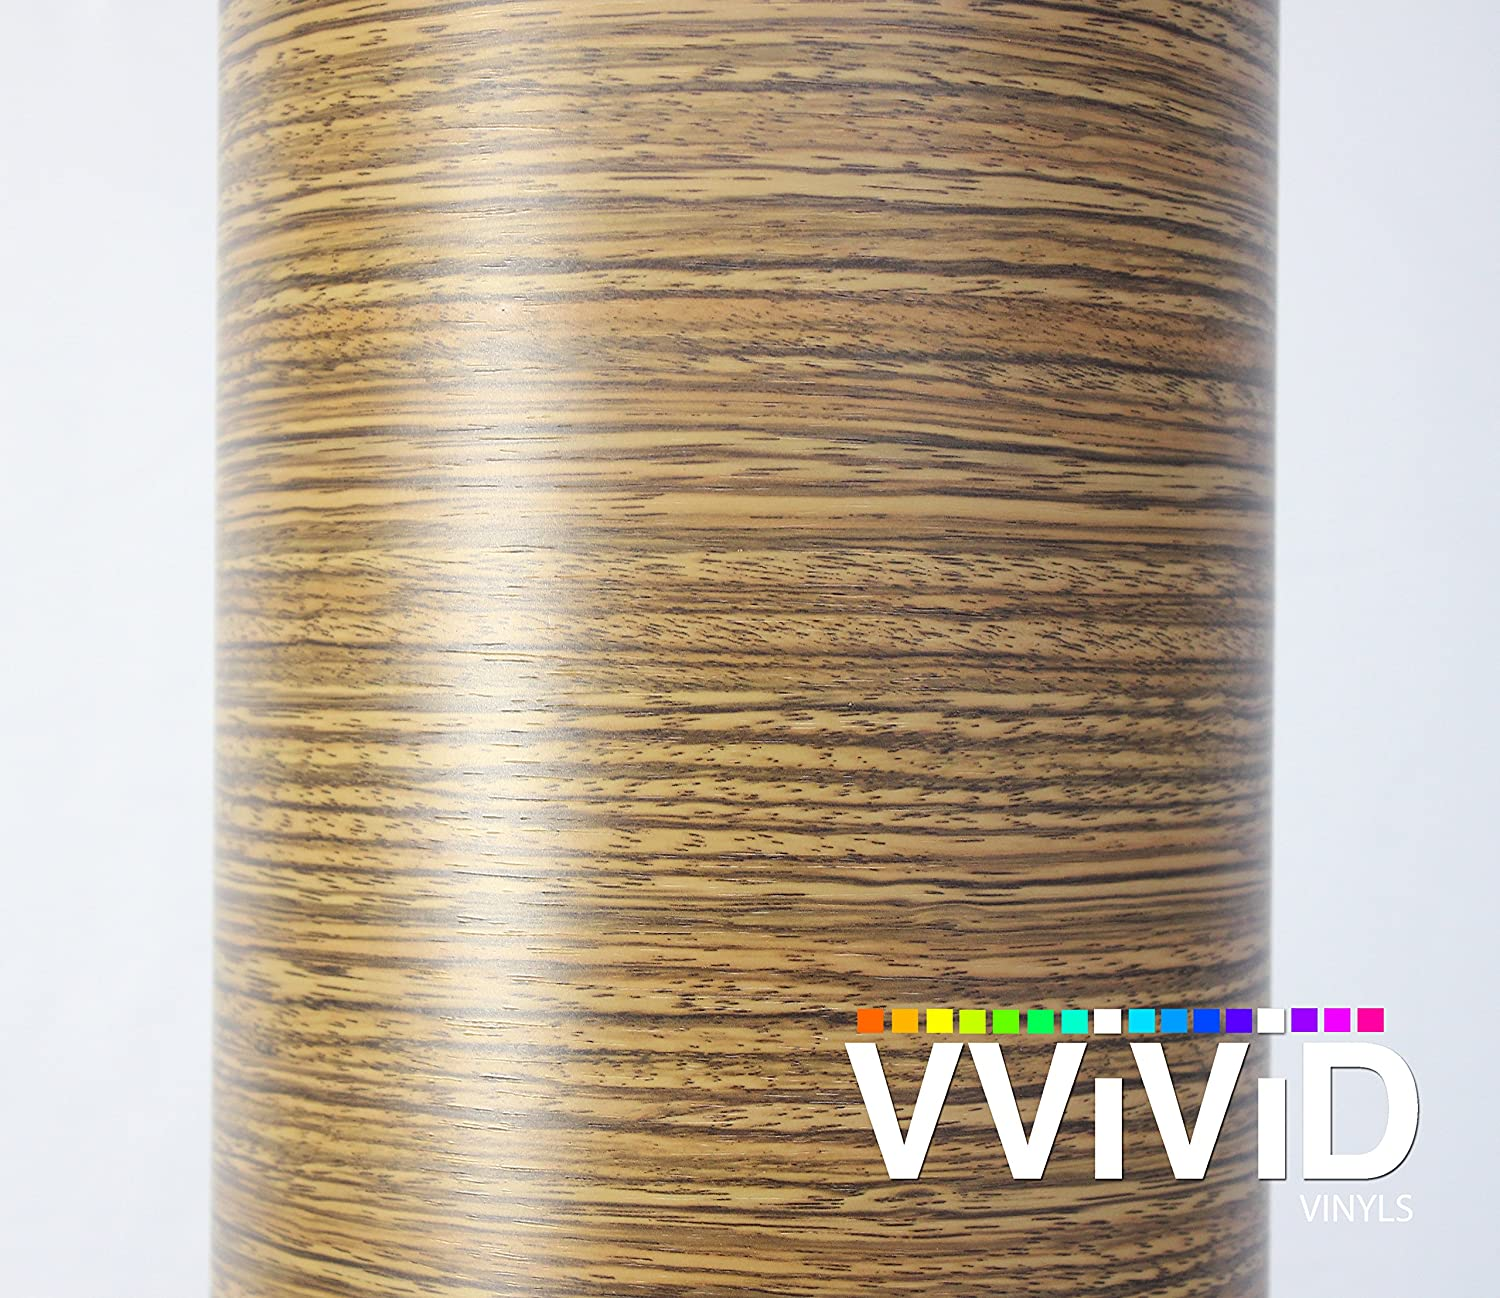 """VVIVID Driftwood Wood Grain Faux Finish Textured Vinyl Wrap Roll Film for Home Office Furniture DIY Easy to Install No Mess (2ft x 48"""")"""